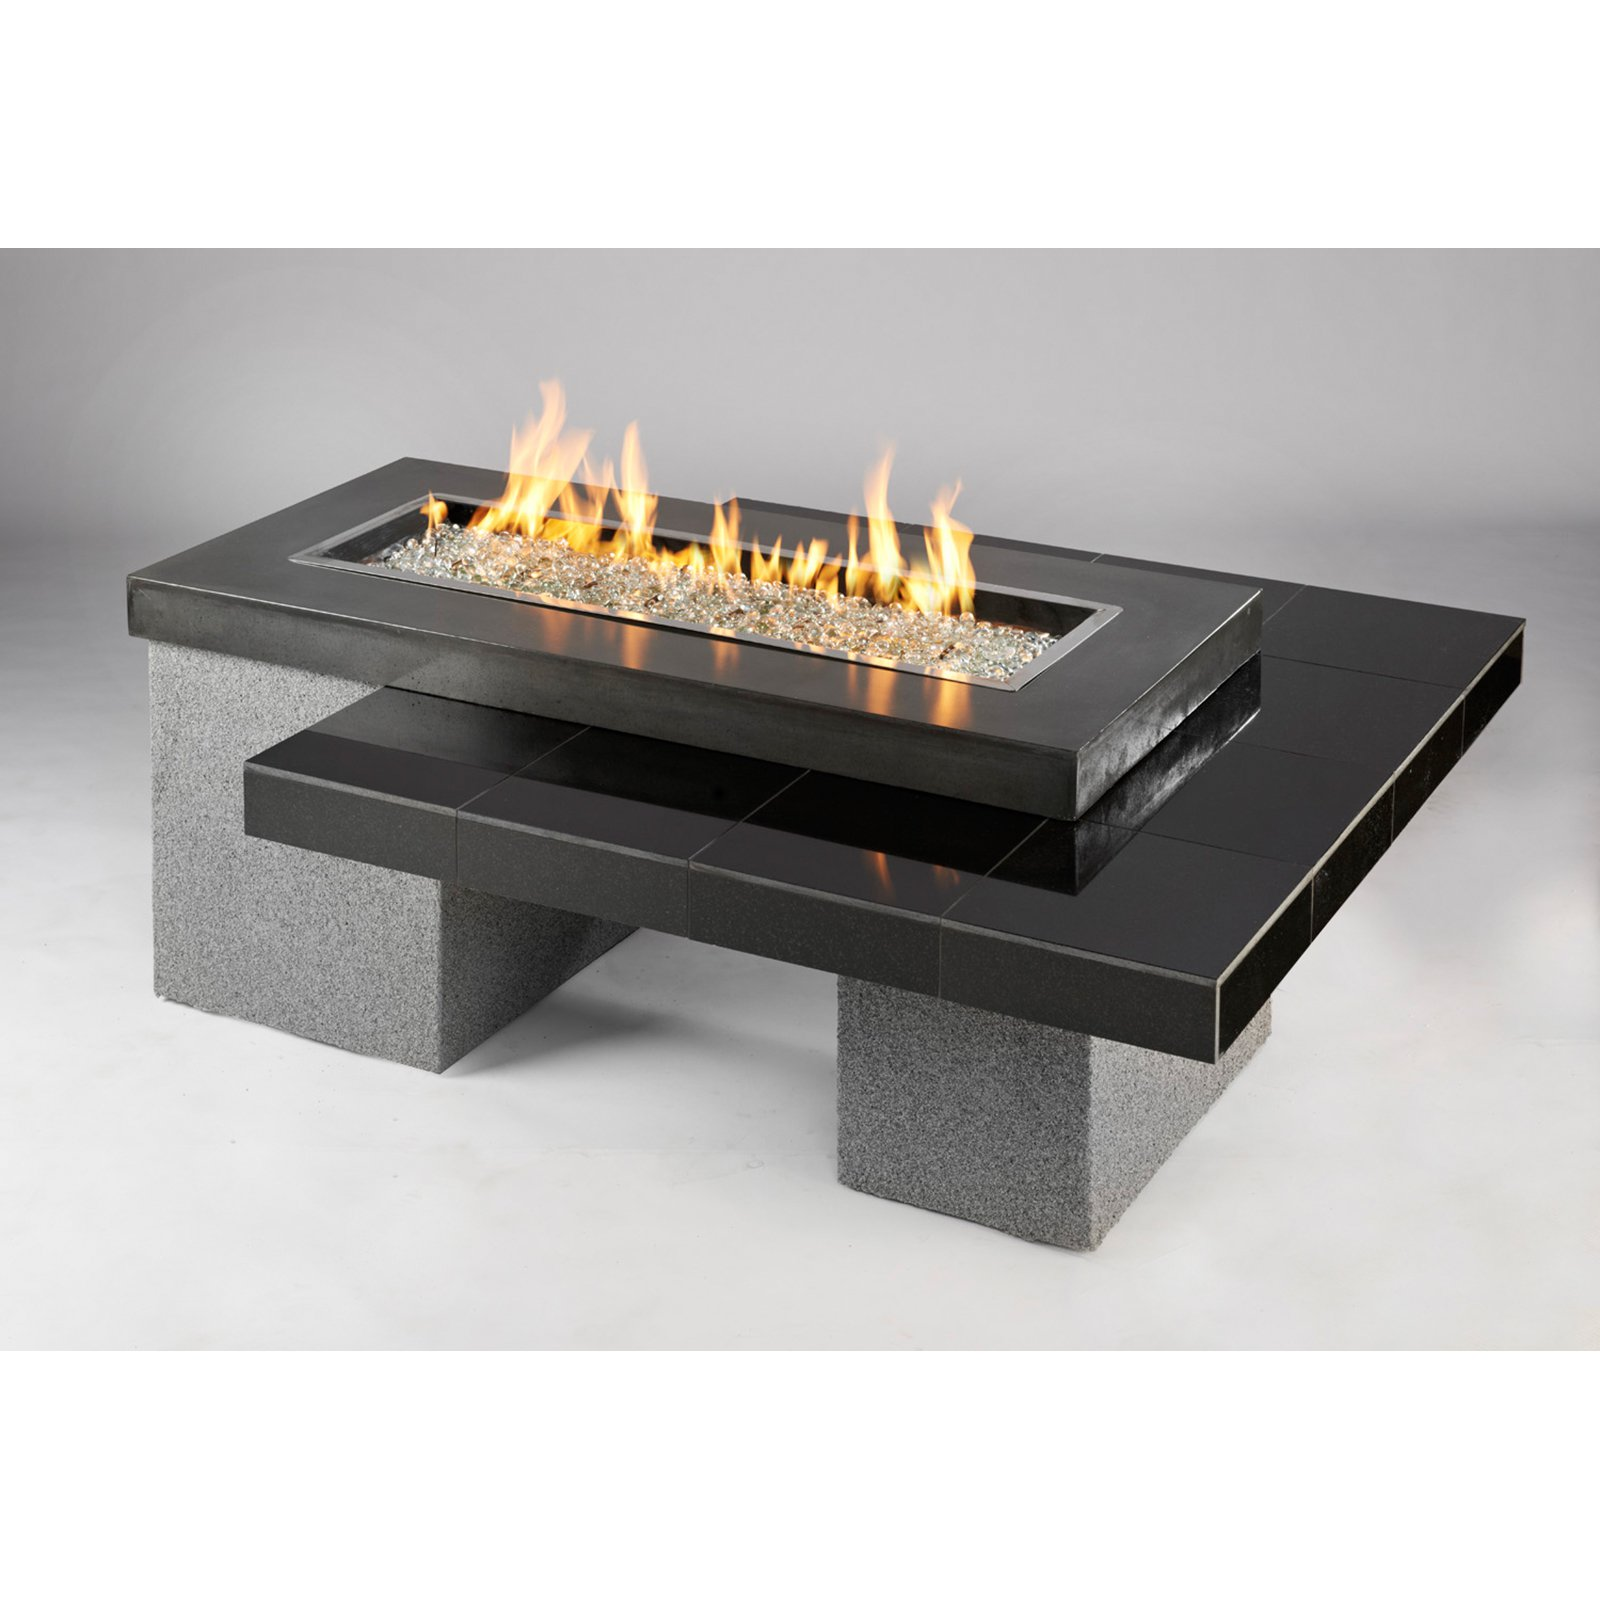 Outdoor GreatRoom Uptown Fire Pit Table - 80k BTUs